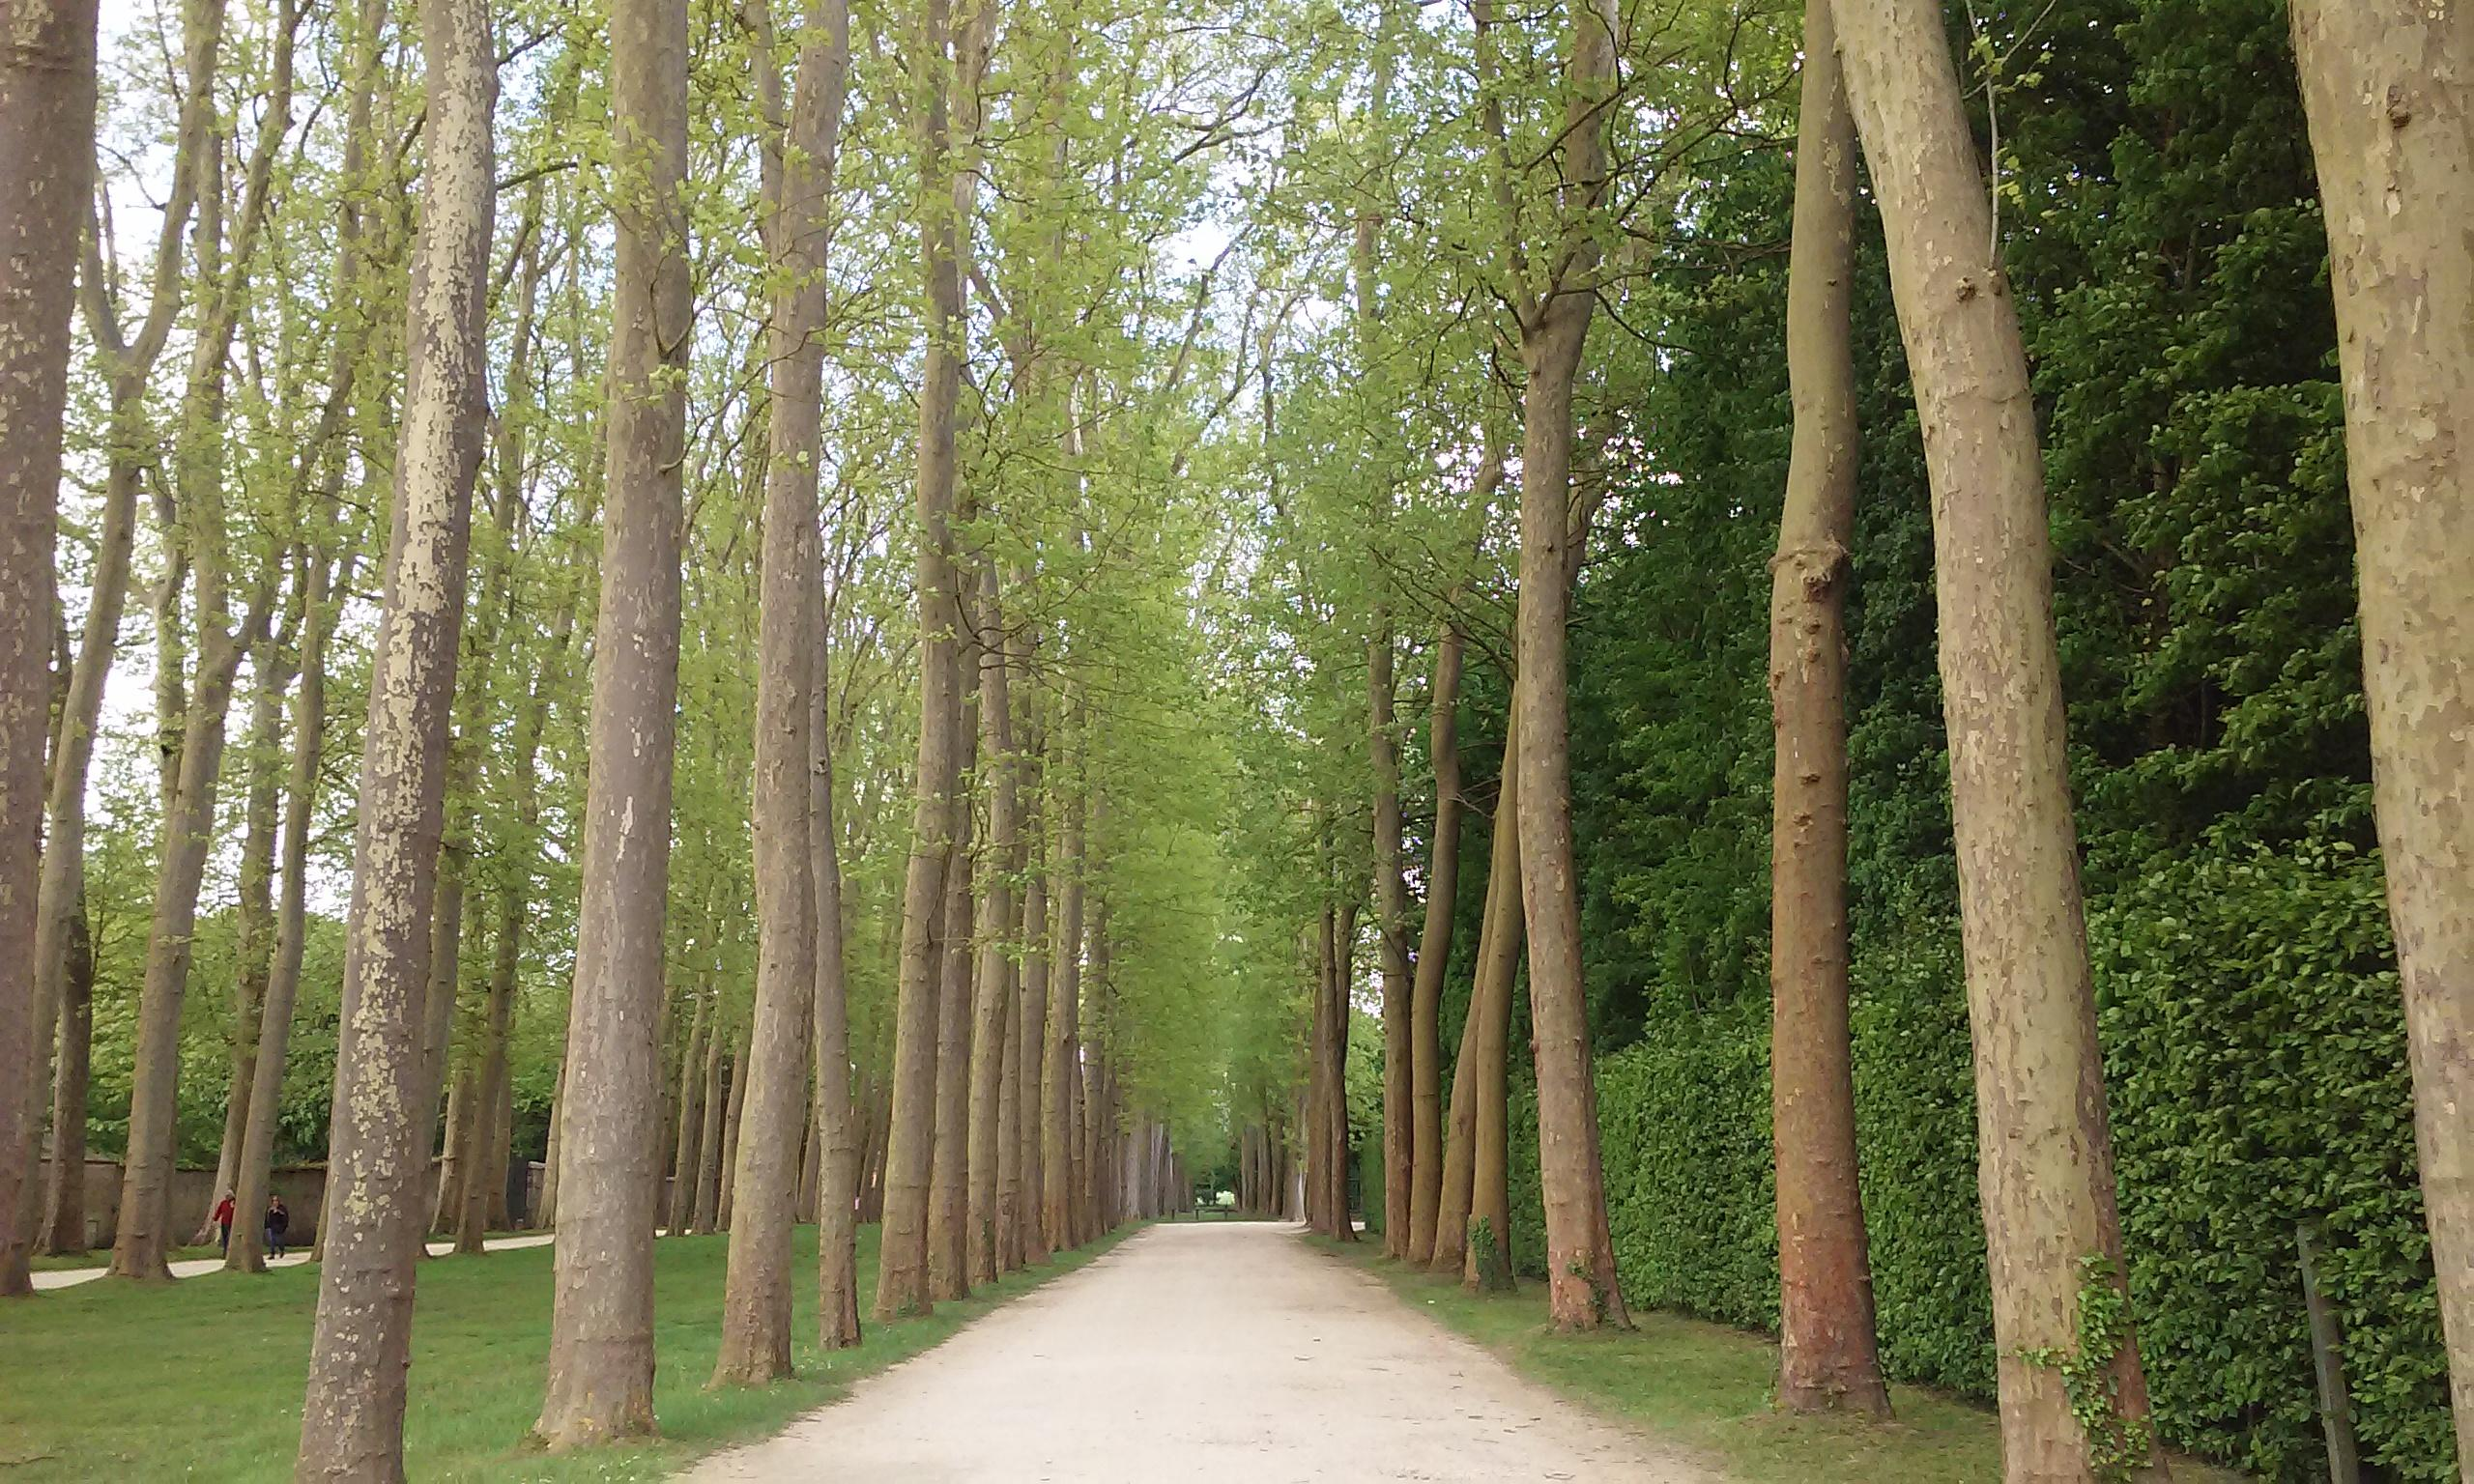 Hallway of trees at Versailles. The gardens have miles of walkways and an entire day can e